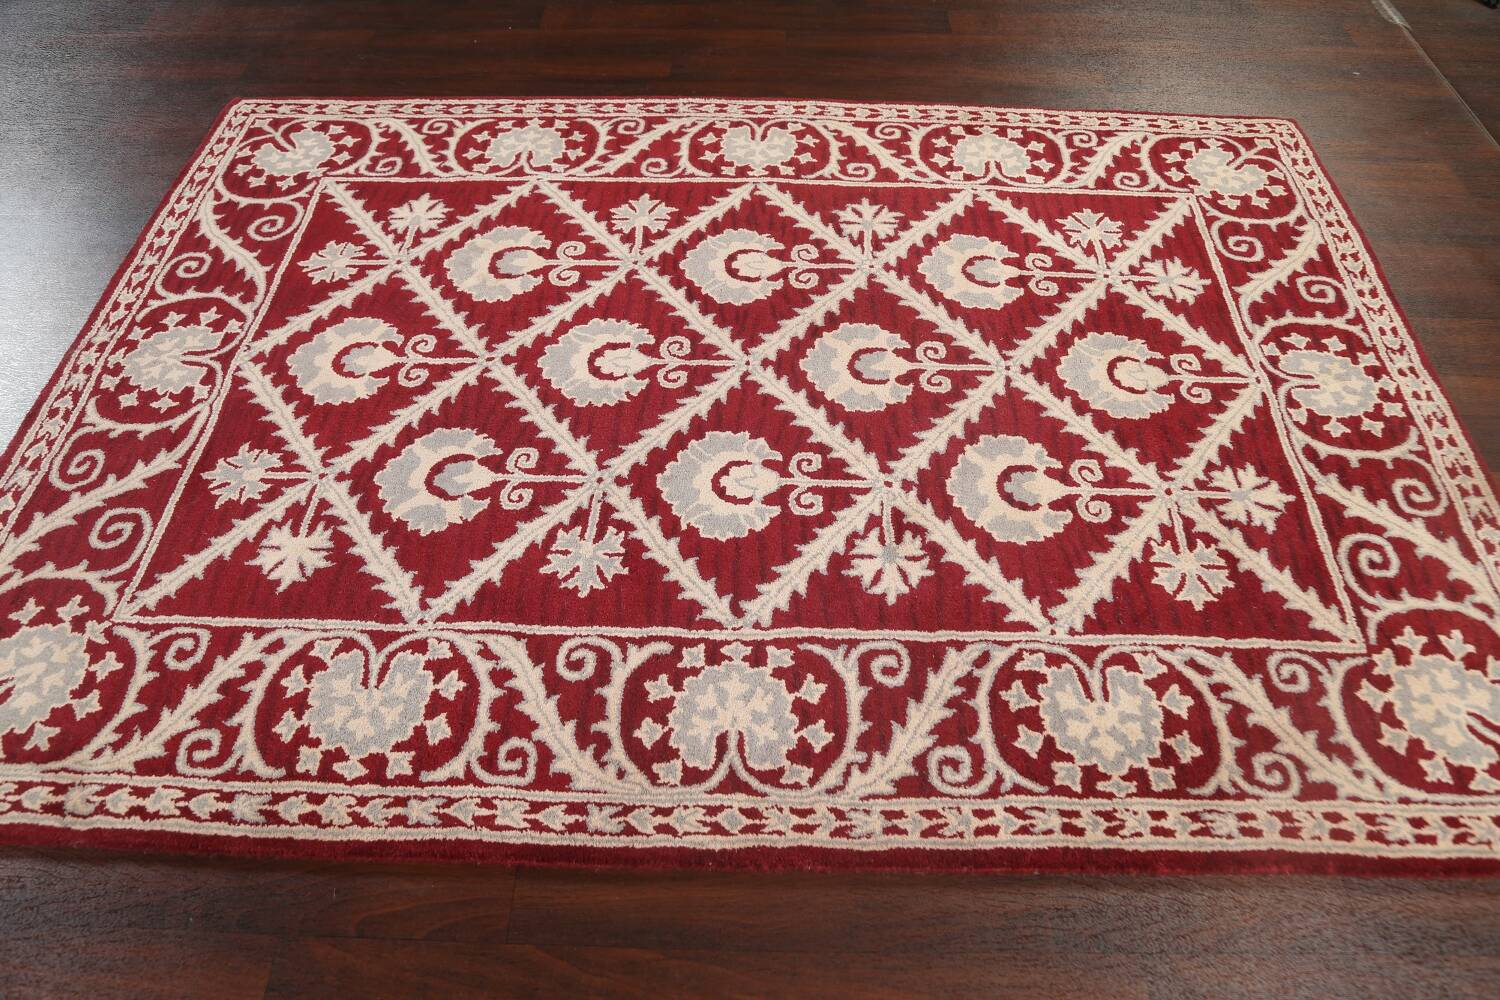 Hand-Tufted Floral Area Rug 6x8 image 12